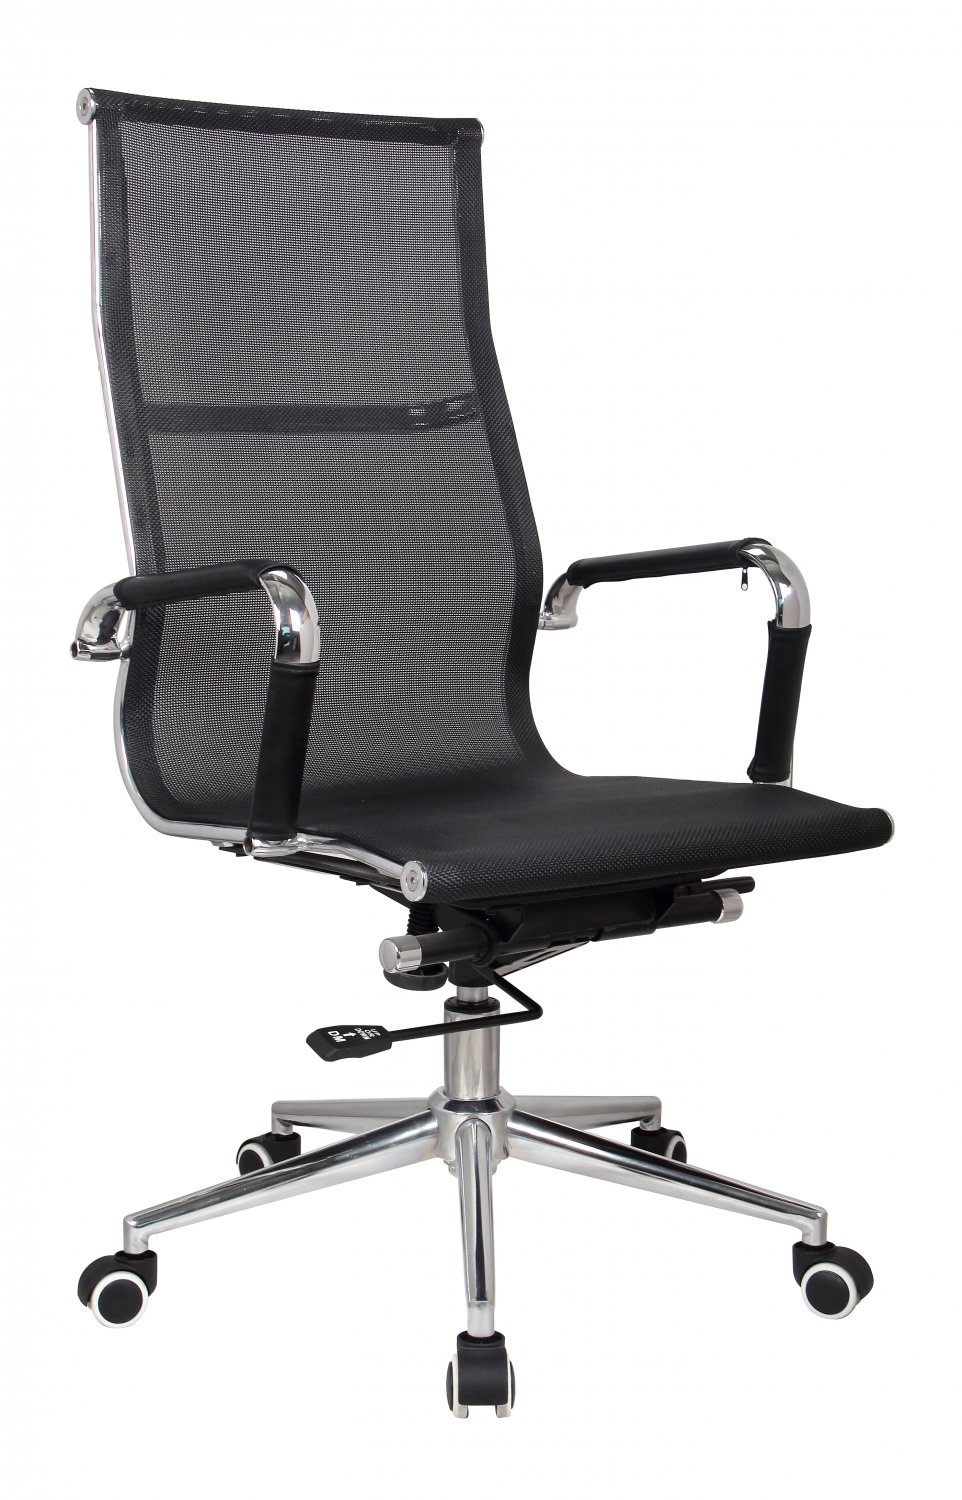 stylish and modern high back mesh executive office chair black